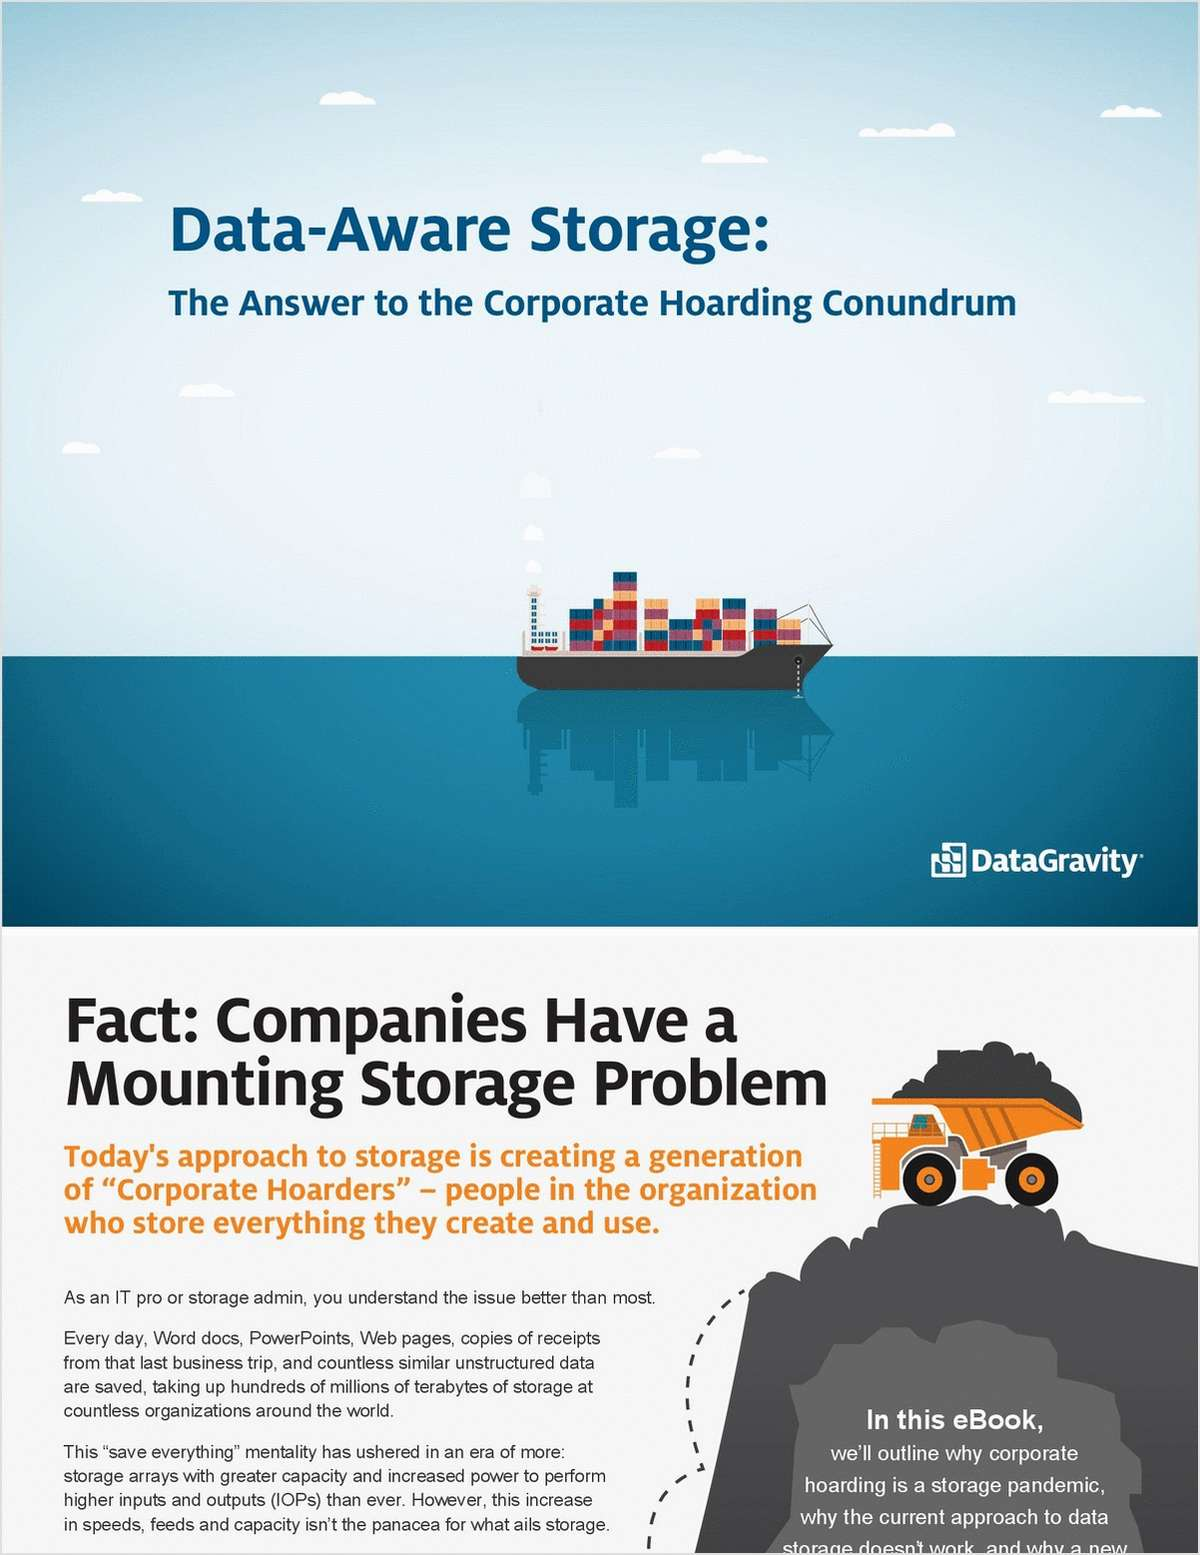 Data-Aware Storage: The Answer to the Corporate Hoarding Conundrum